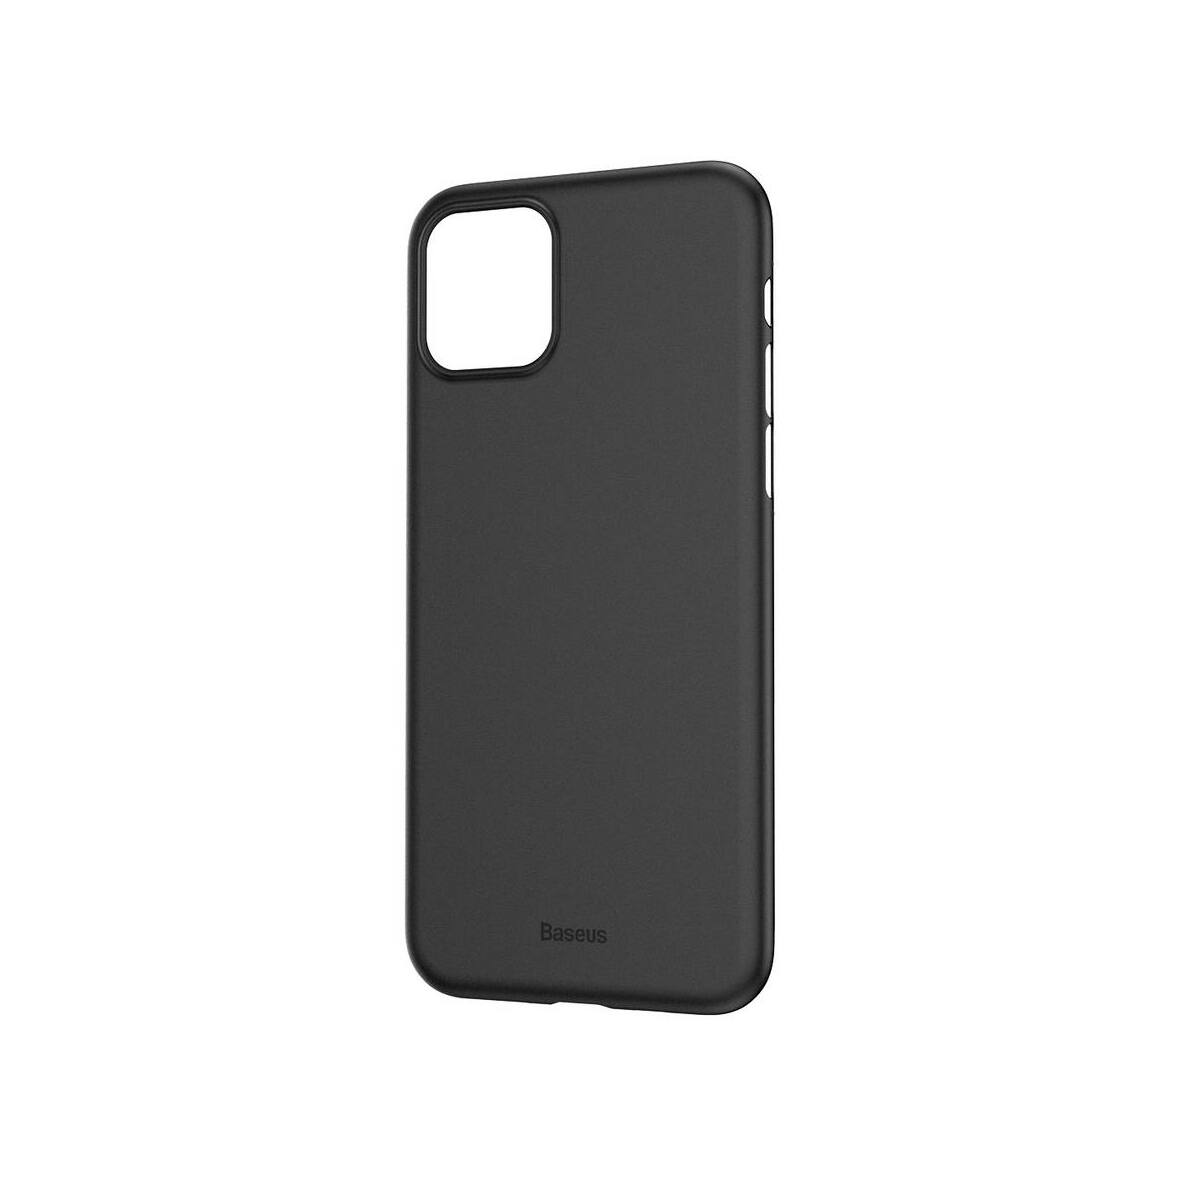 Baseus iPhone 11 Pro tok, Wing Solid, fekete (WIAPIPH61S-A01)